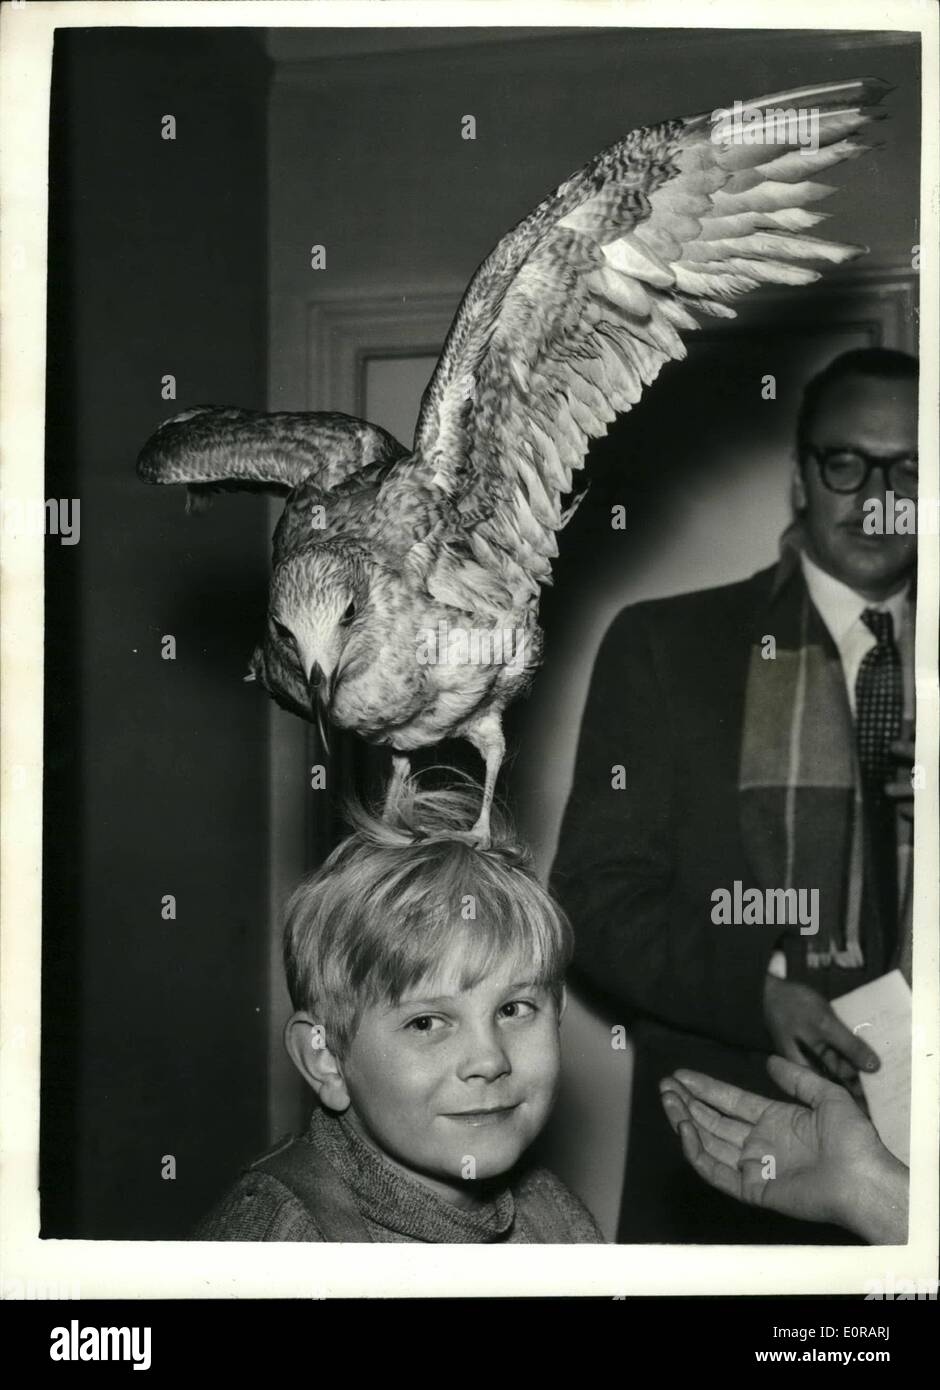 Nov. 11, 1958 - Nine year old London boy who stars in the new film ''The Boy and the Bridge'': Nine year old Ian McLaine, of Stke Newington, is the boy who plays the title role in the new Xandu film ''The Boy and The Bridge''. He was chosen from more than 3,000 aspirants and has never had any Previous professional experience. The two heroes of this film are, in fact, The Boy, and the Bridge. The boy plays the part of a 9 year old cockney who runs away from his father and his squalid Bermondsey lodgings - Stock Image